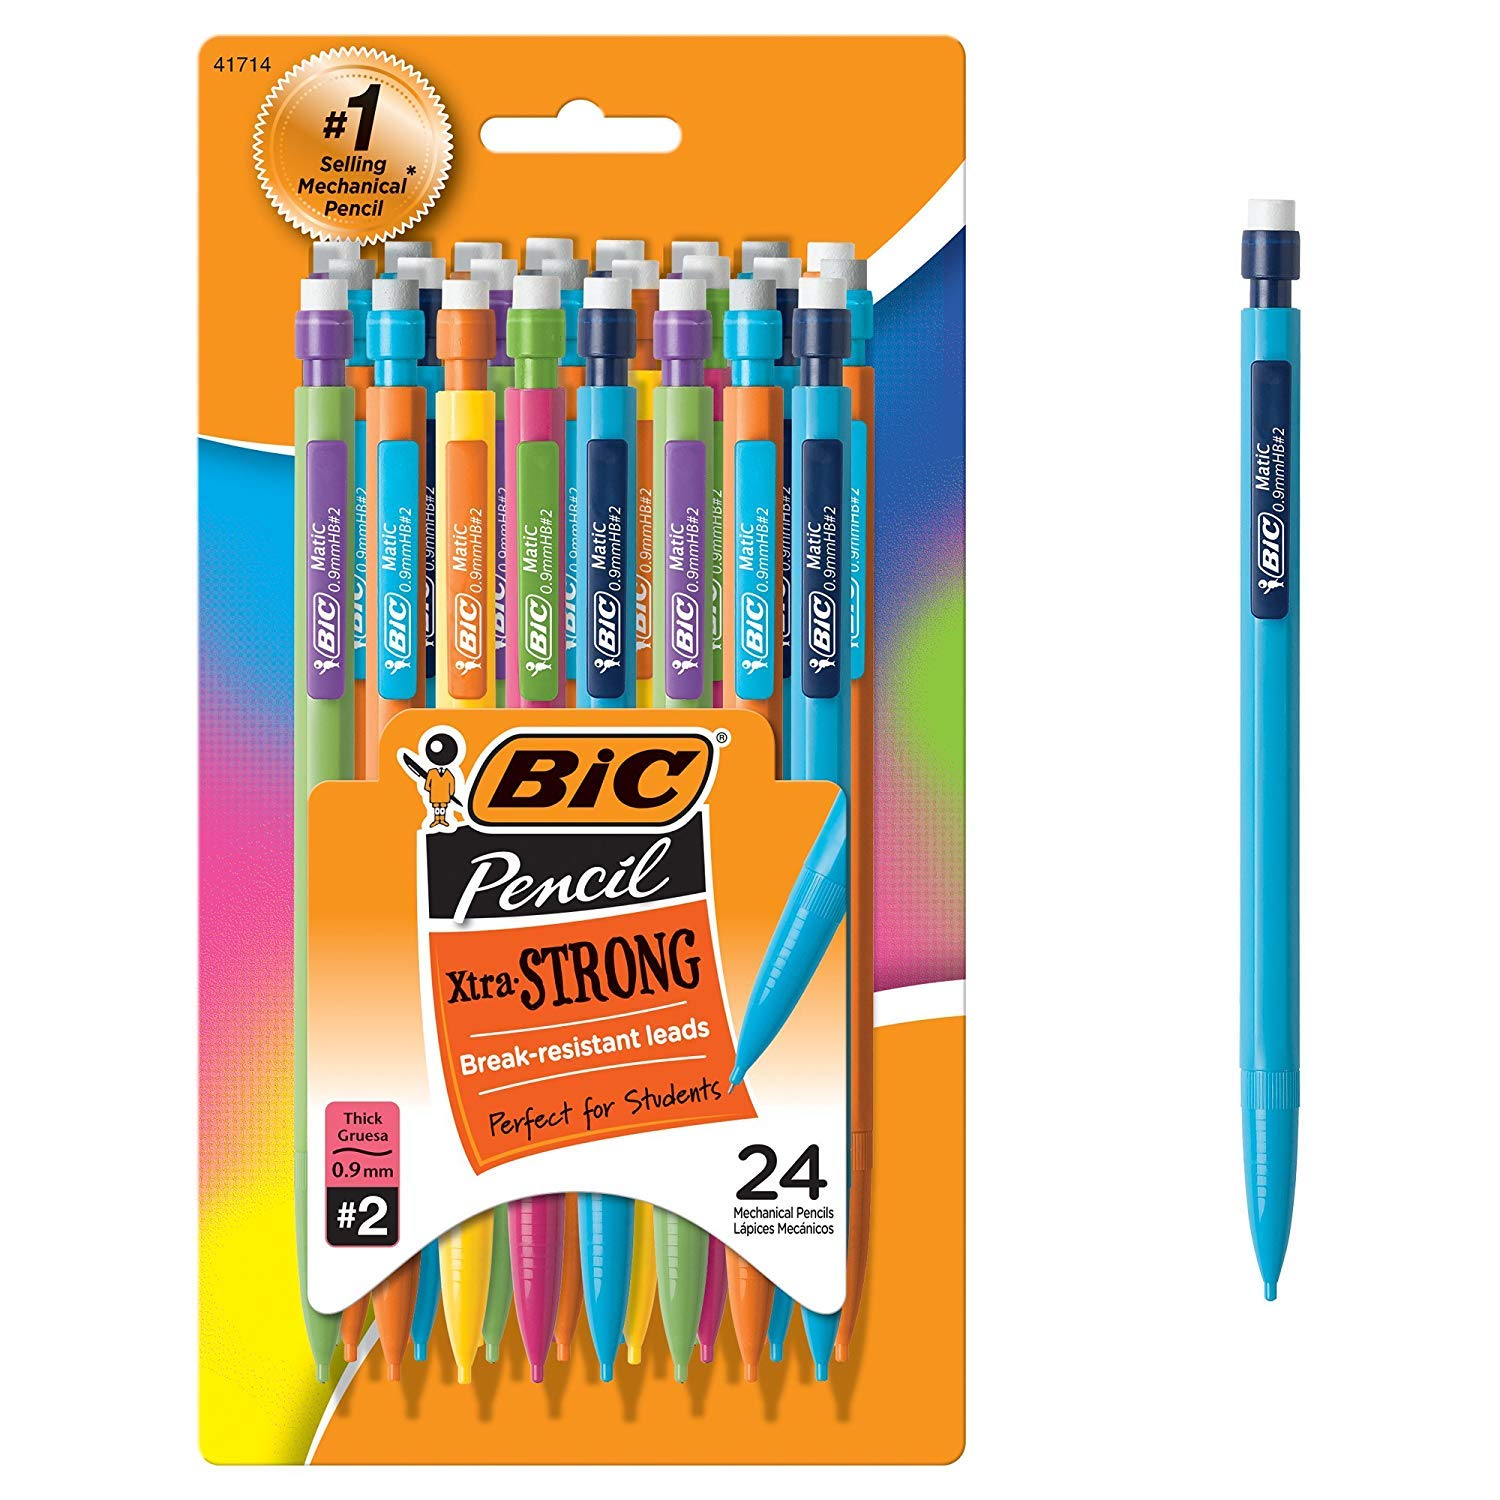 BIC Xtra-Strong Mechanical Pencil, Colorful Barrel, Thick Point (0.9mm), 24-Count (MPLWP241) (48 Ct)